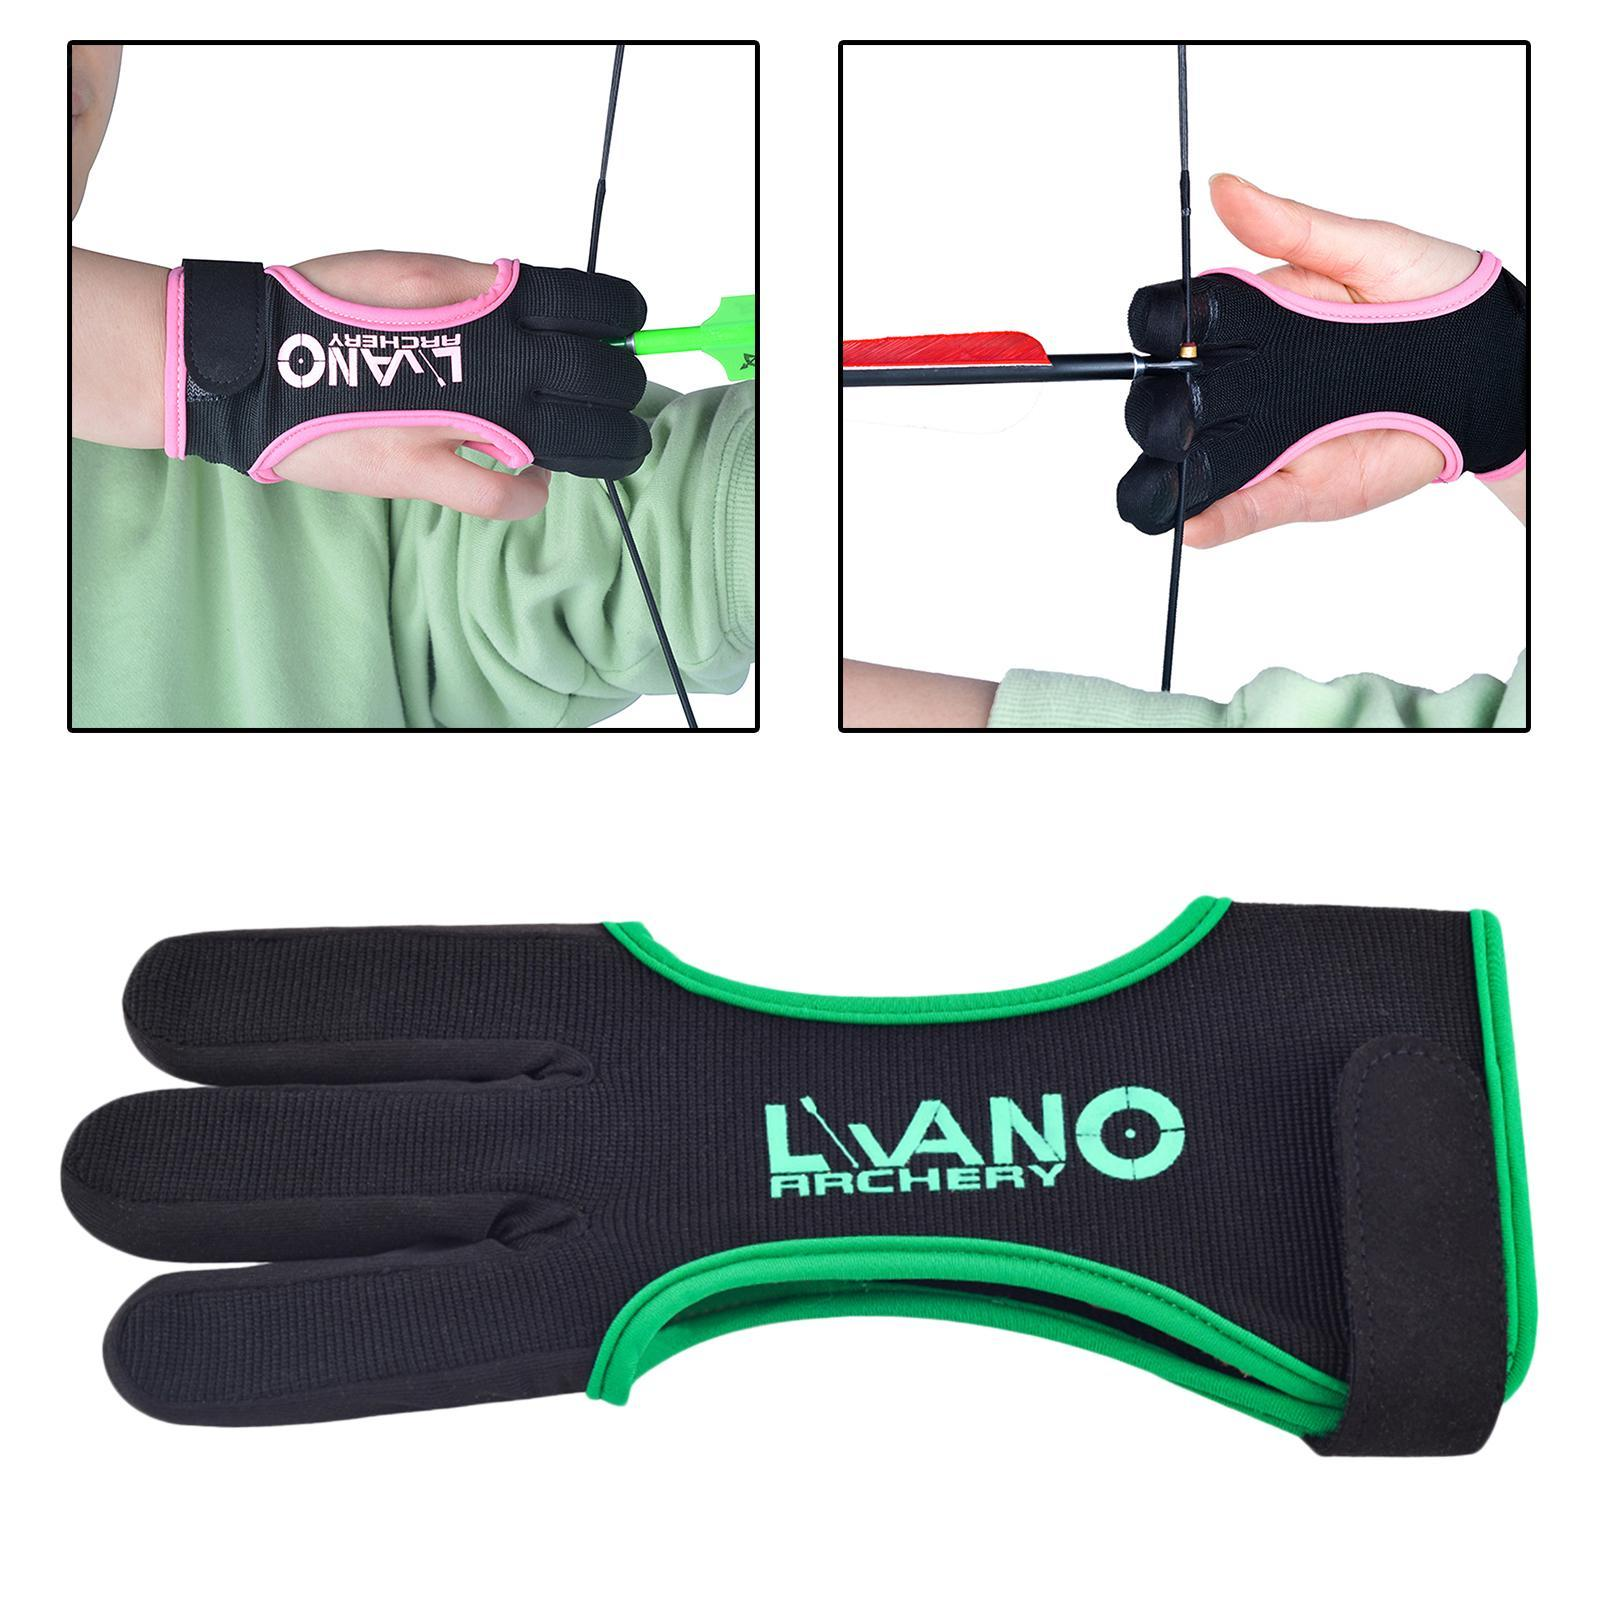 thumbnail 73 - Archery Glove for Recurve & Compound Bow 3 Finger Guard for Women Men Youth